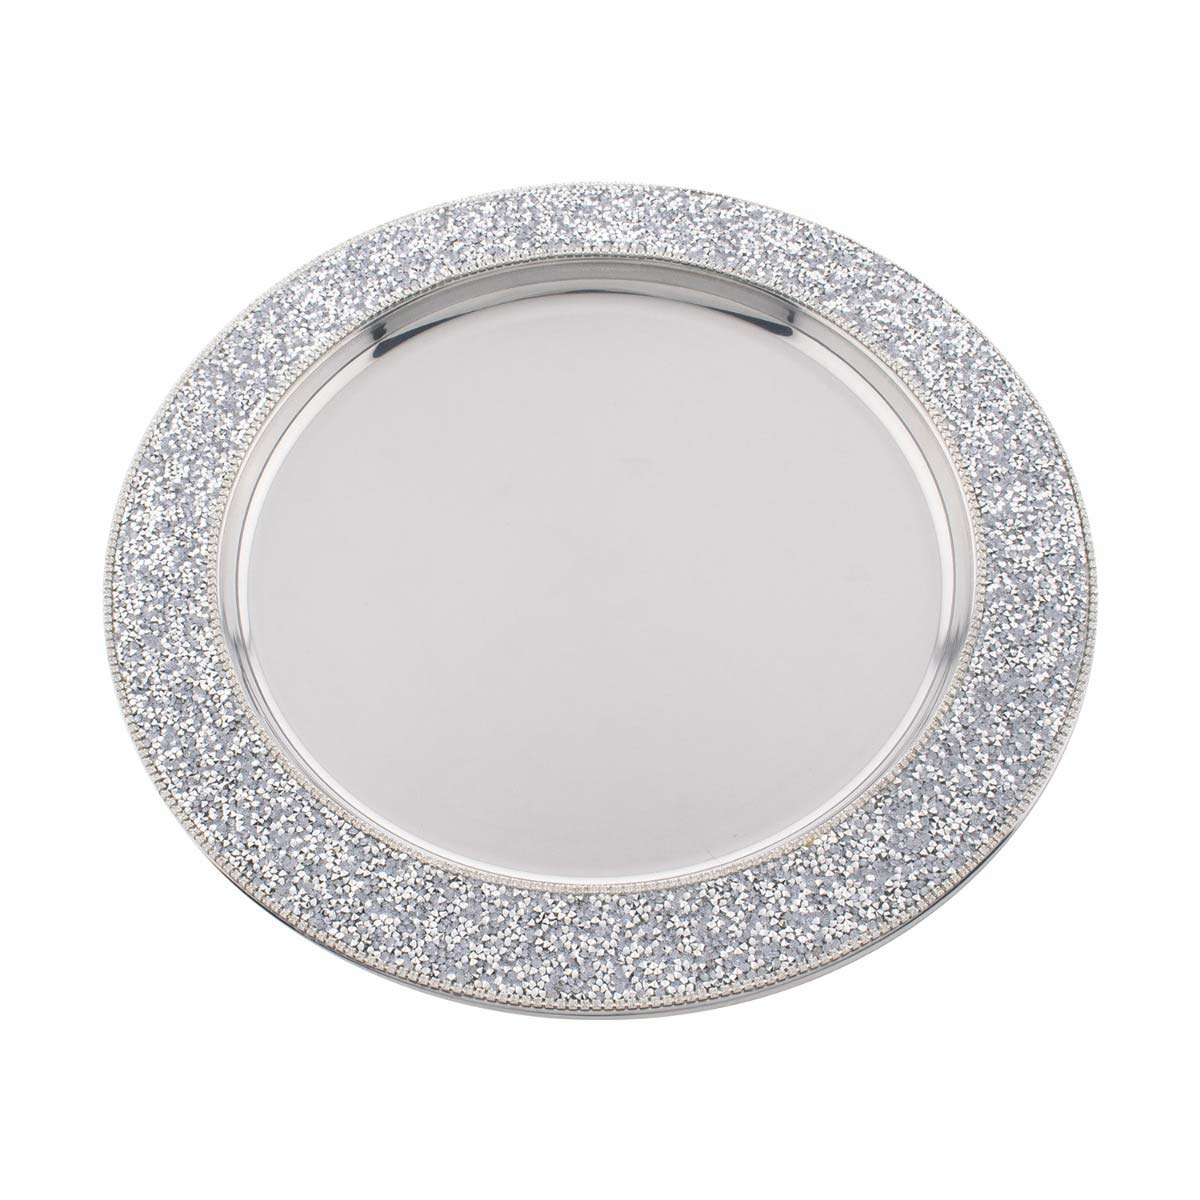 Sparkles Home Luminous Charger Plate